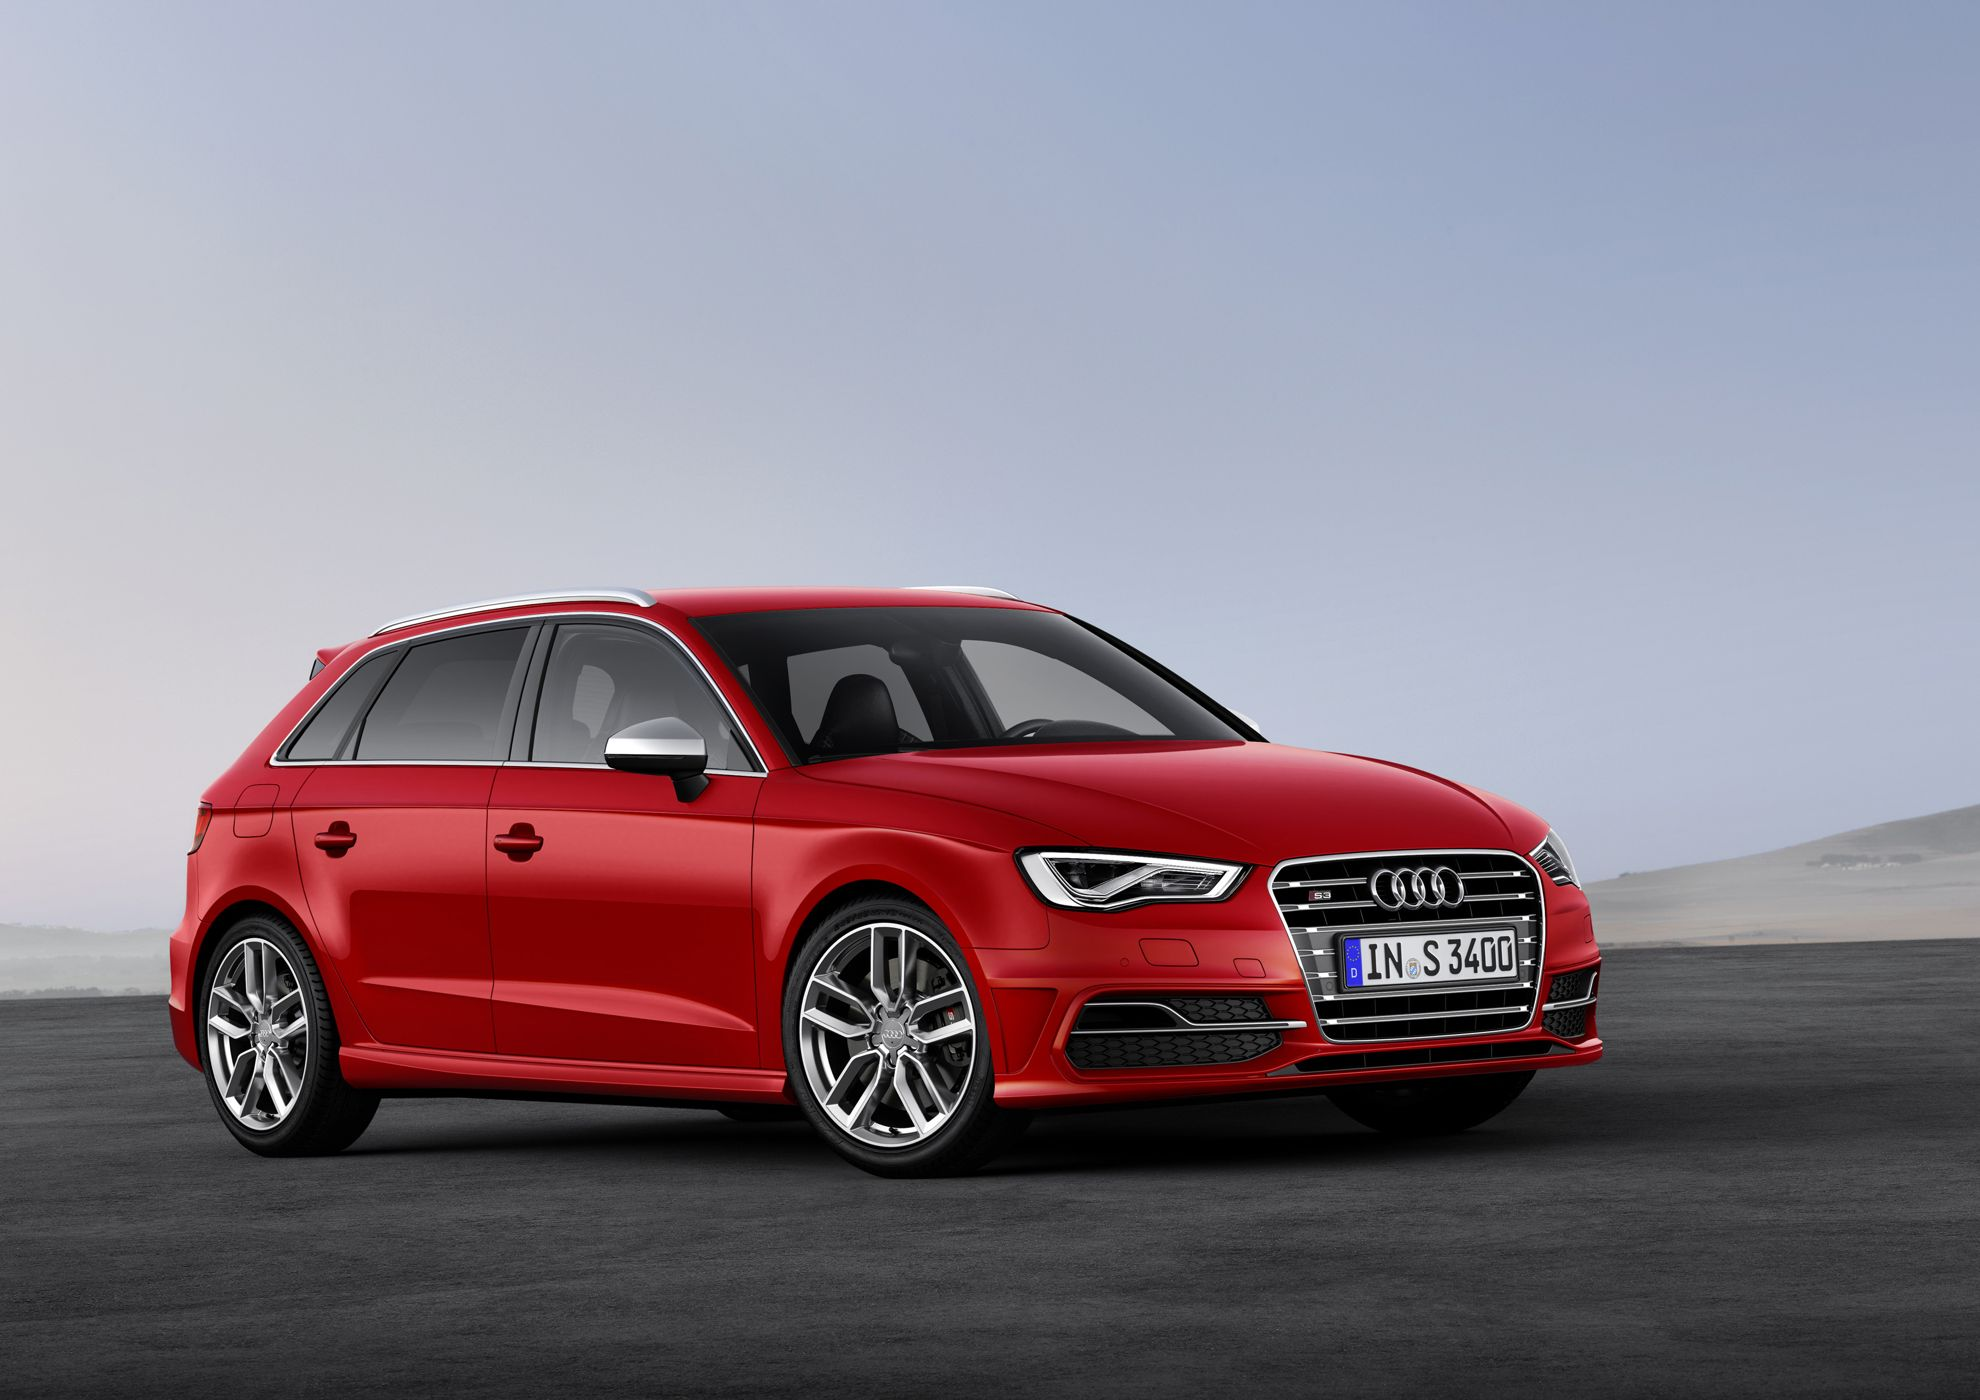 New Audi S3 Sportback 2014 in South Africa